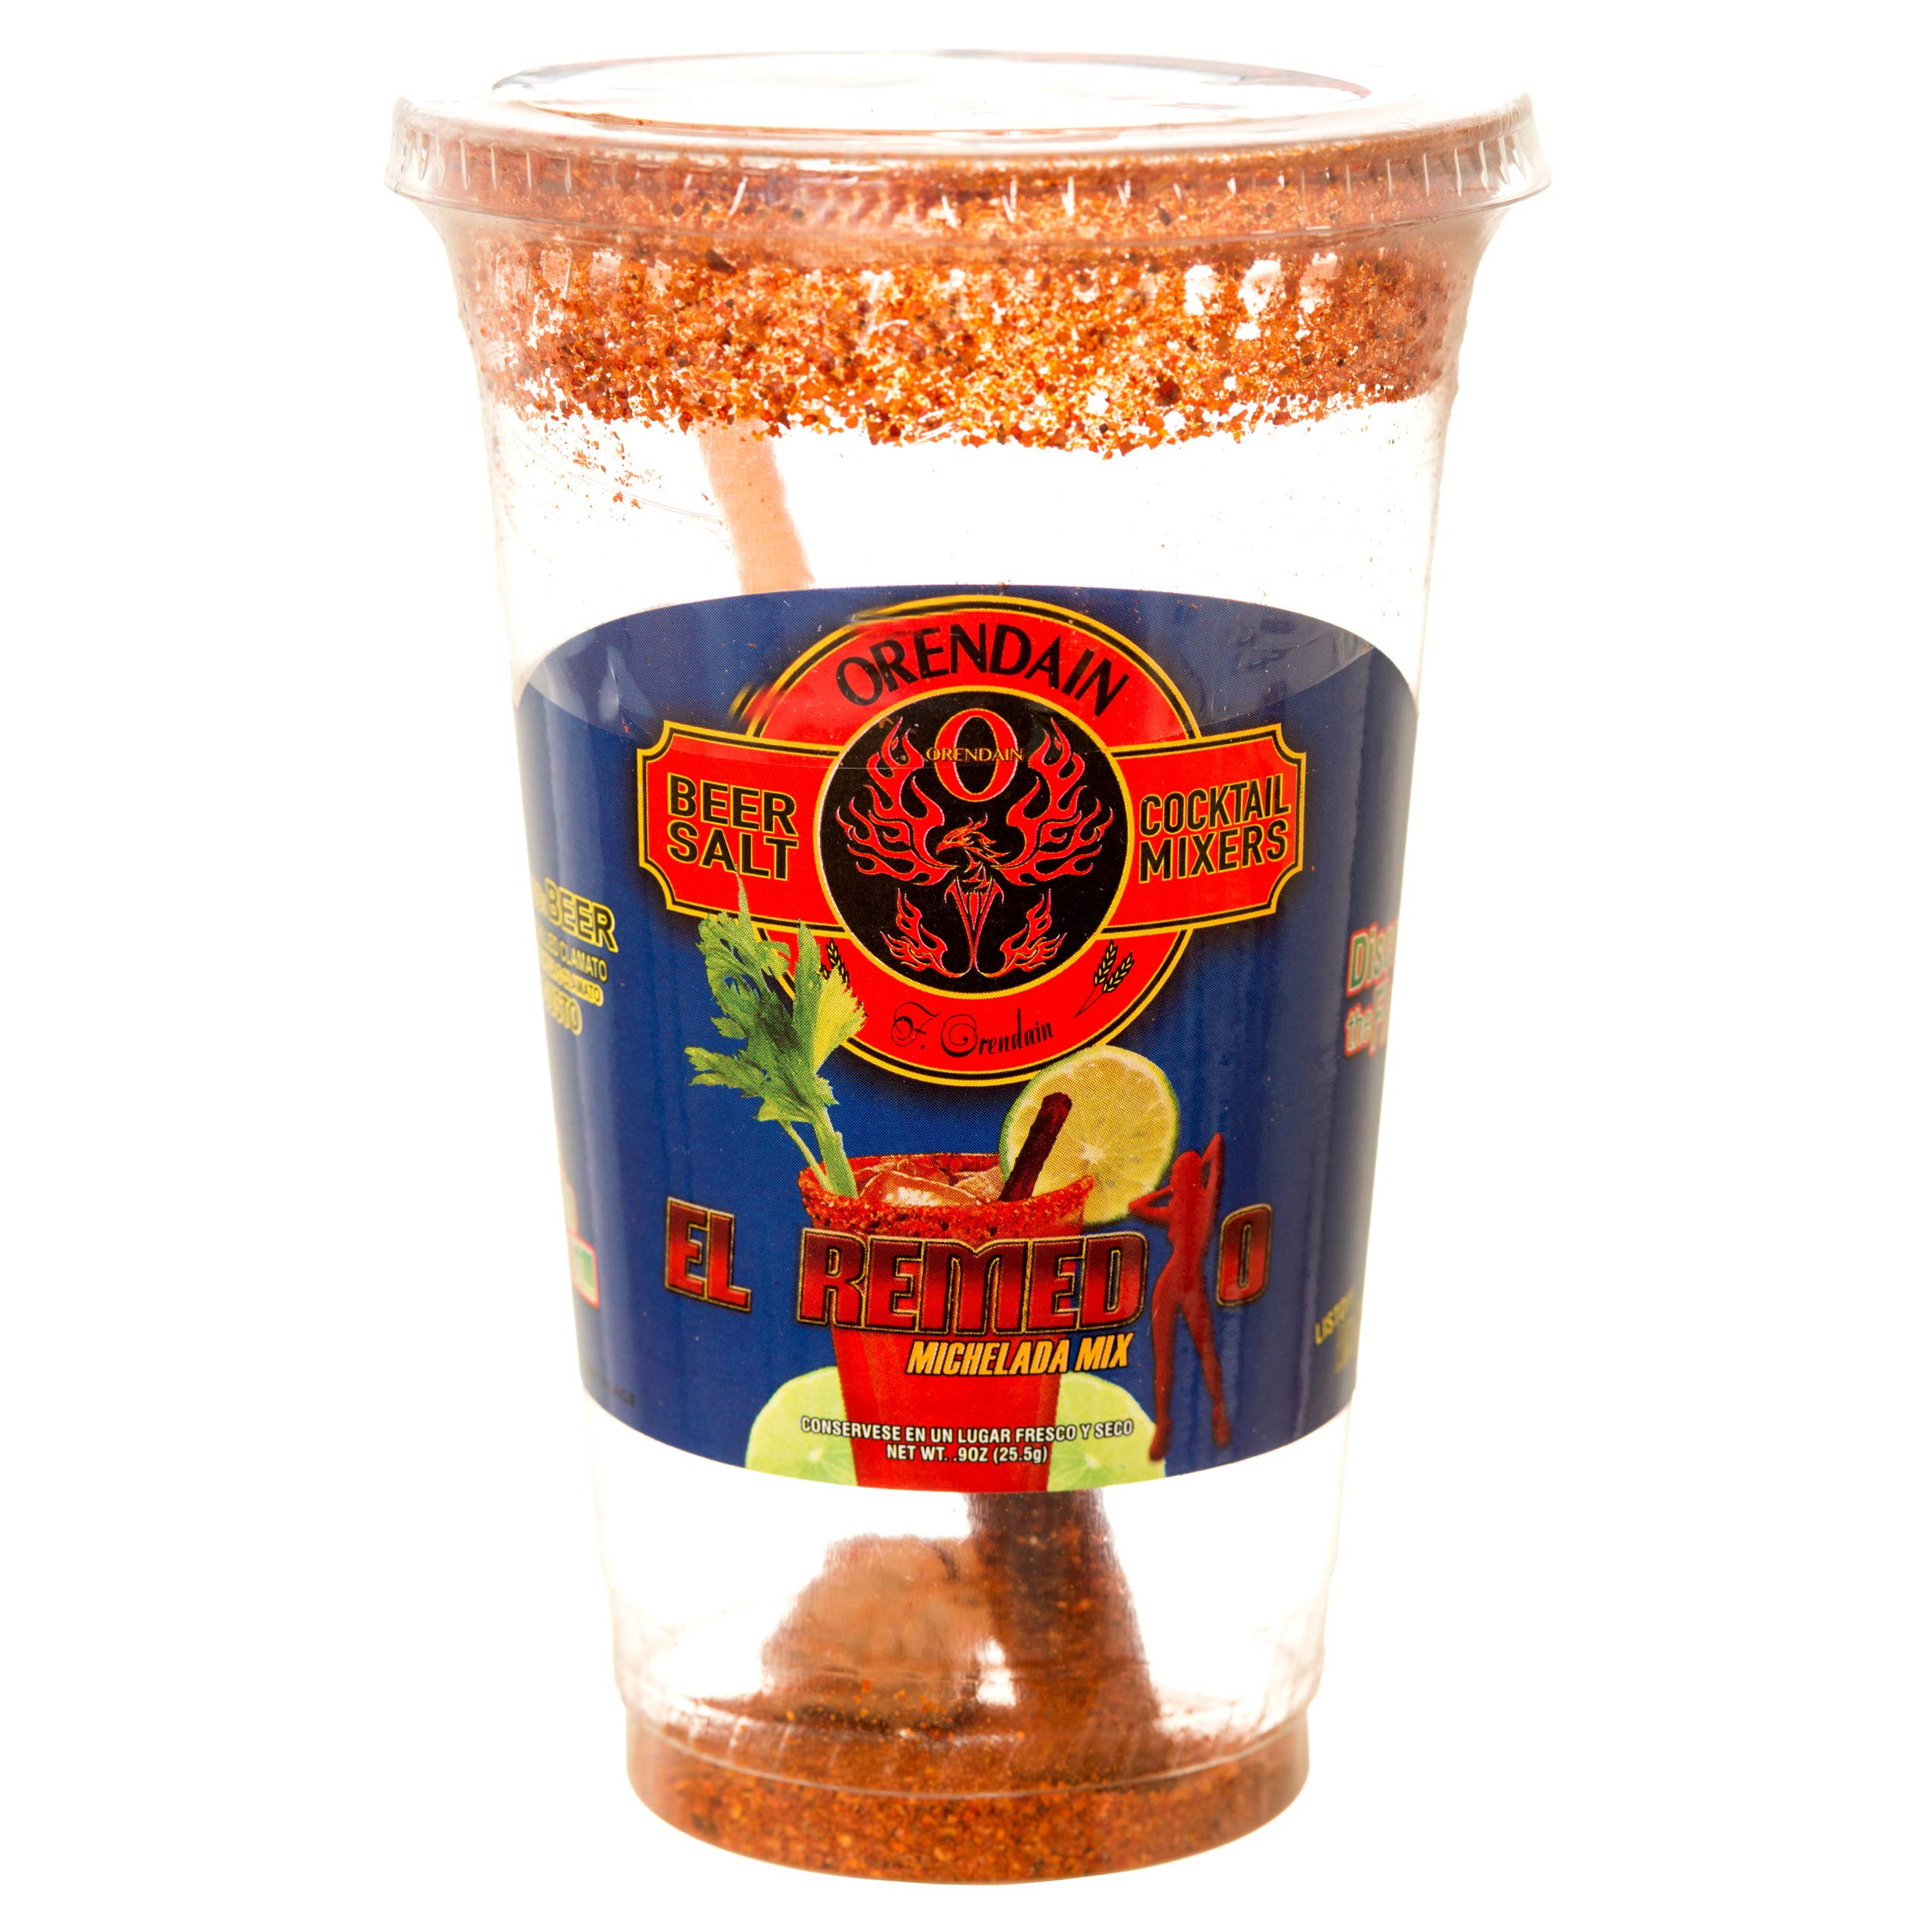 Orendain Beer Salt Cocktail Mixers El Remedio Michelada Mix with Tamarind Stick (Clear Cup) (6)